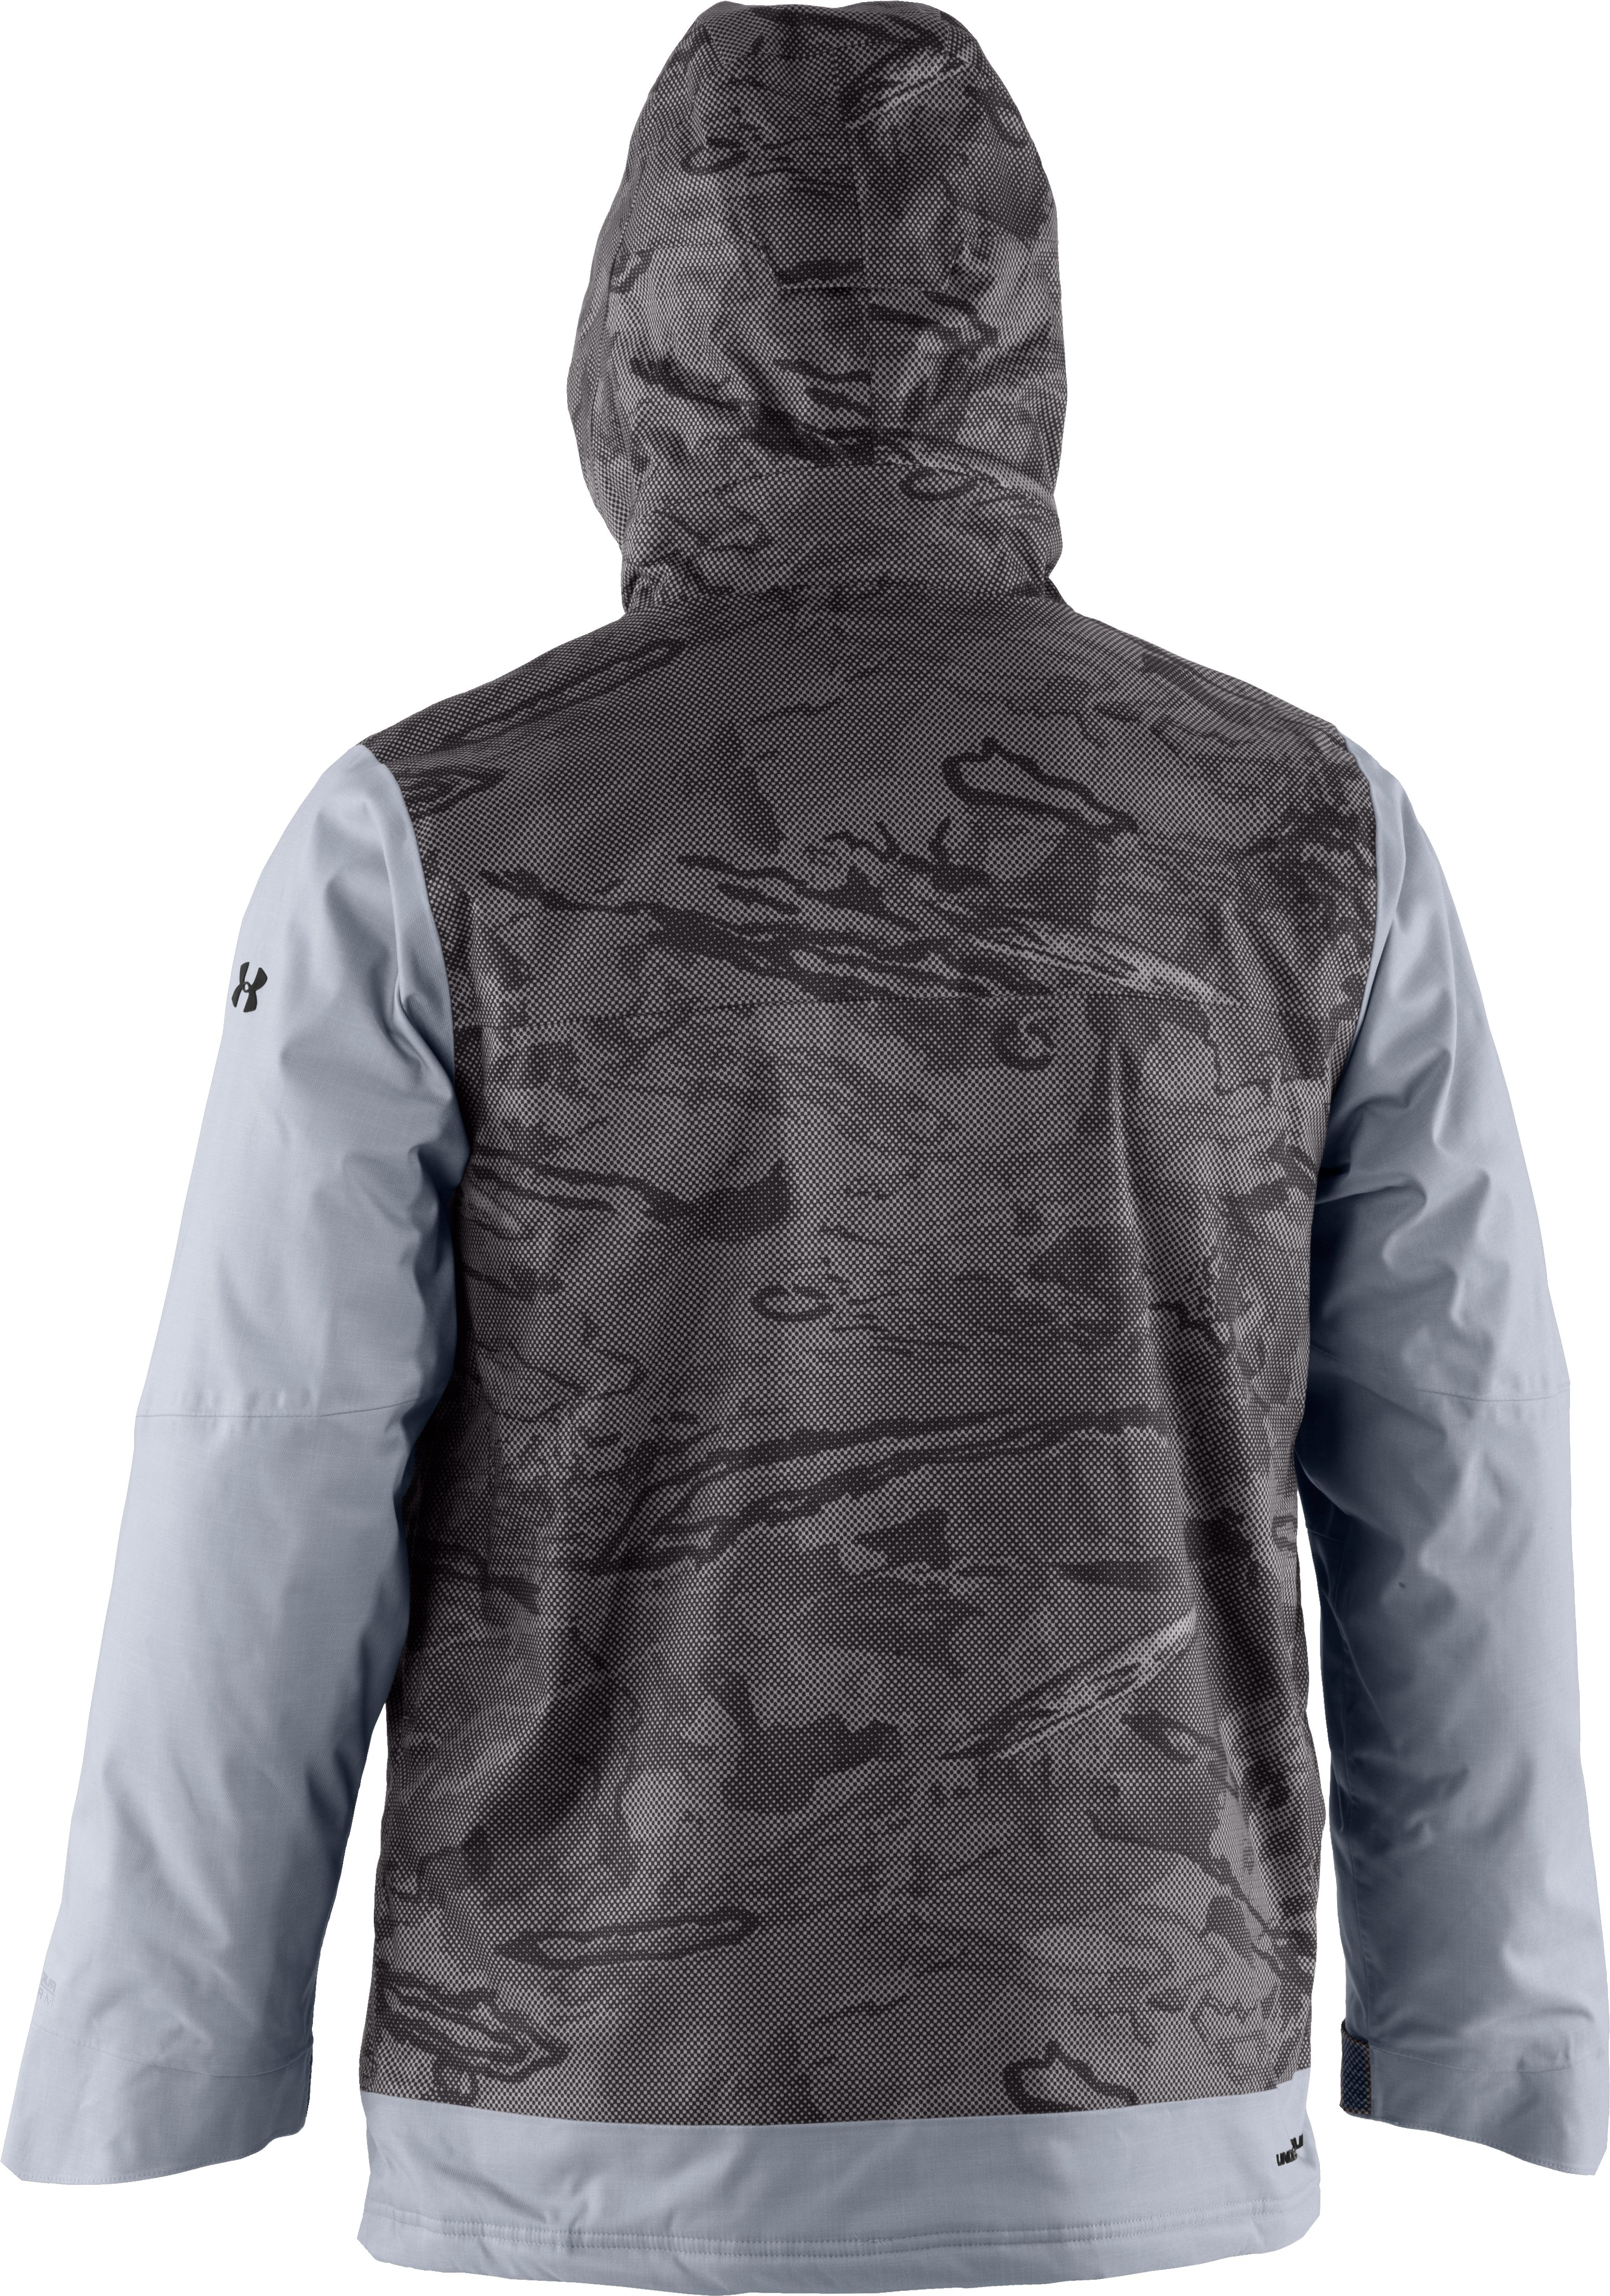 Men's ColdGear® Infrared Electro Jacket, Charcoal